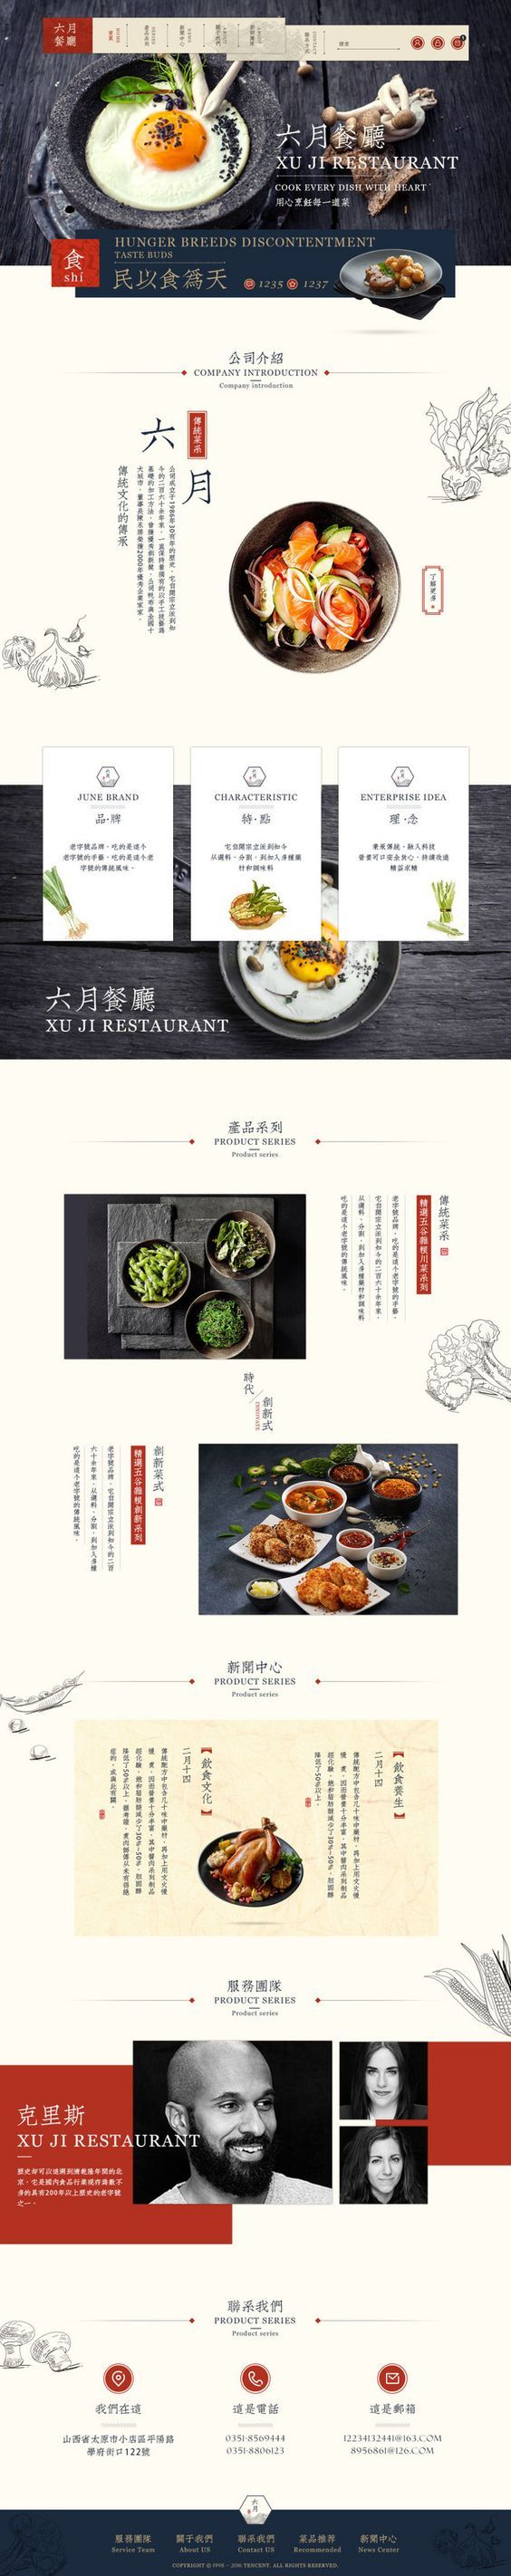 Original works: Jun Restaurant # # Chinese style business website: